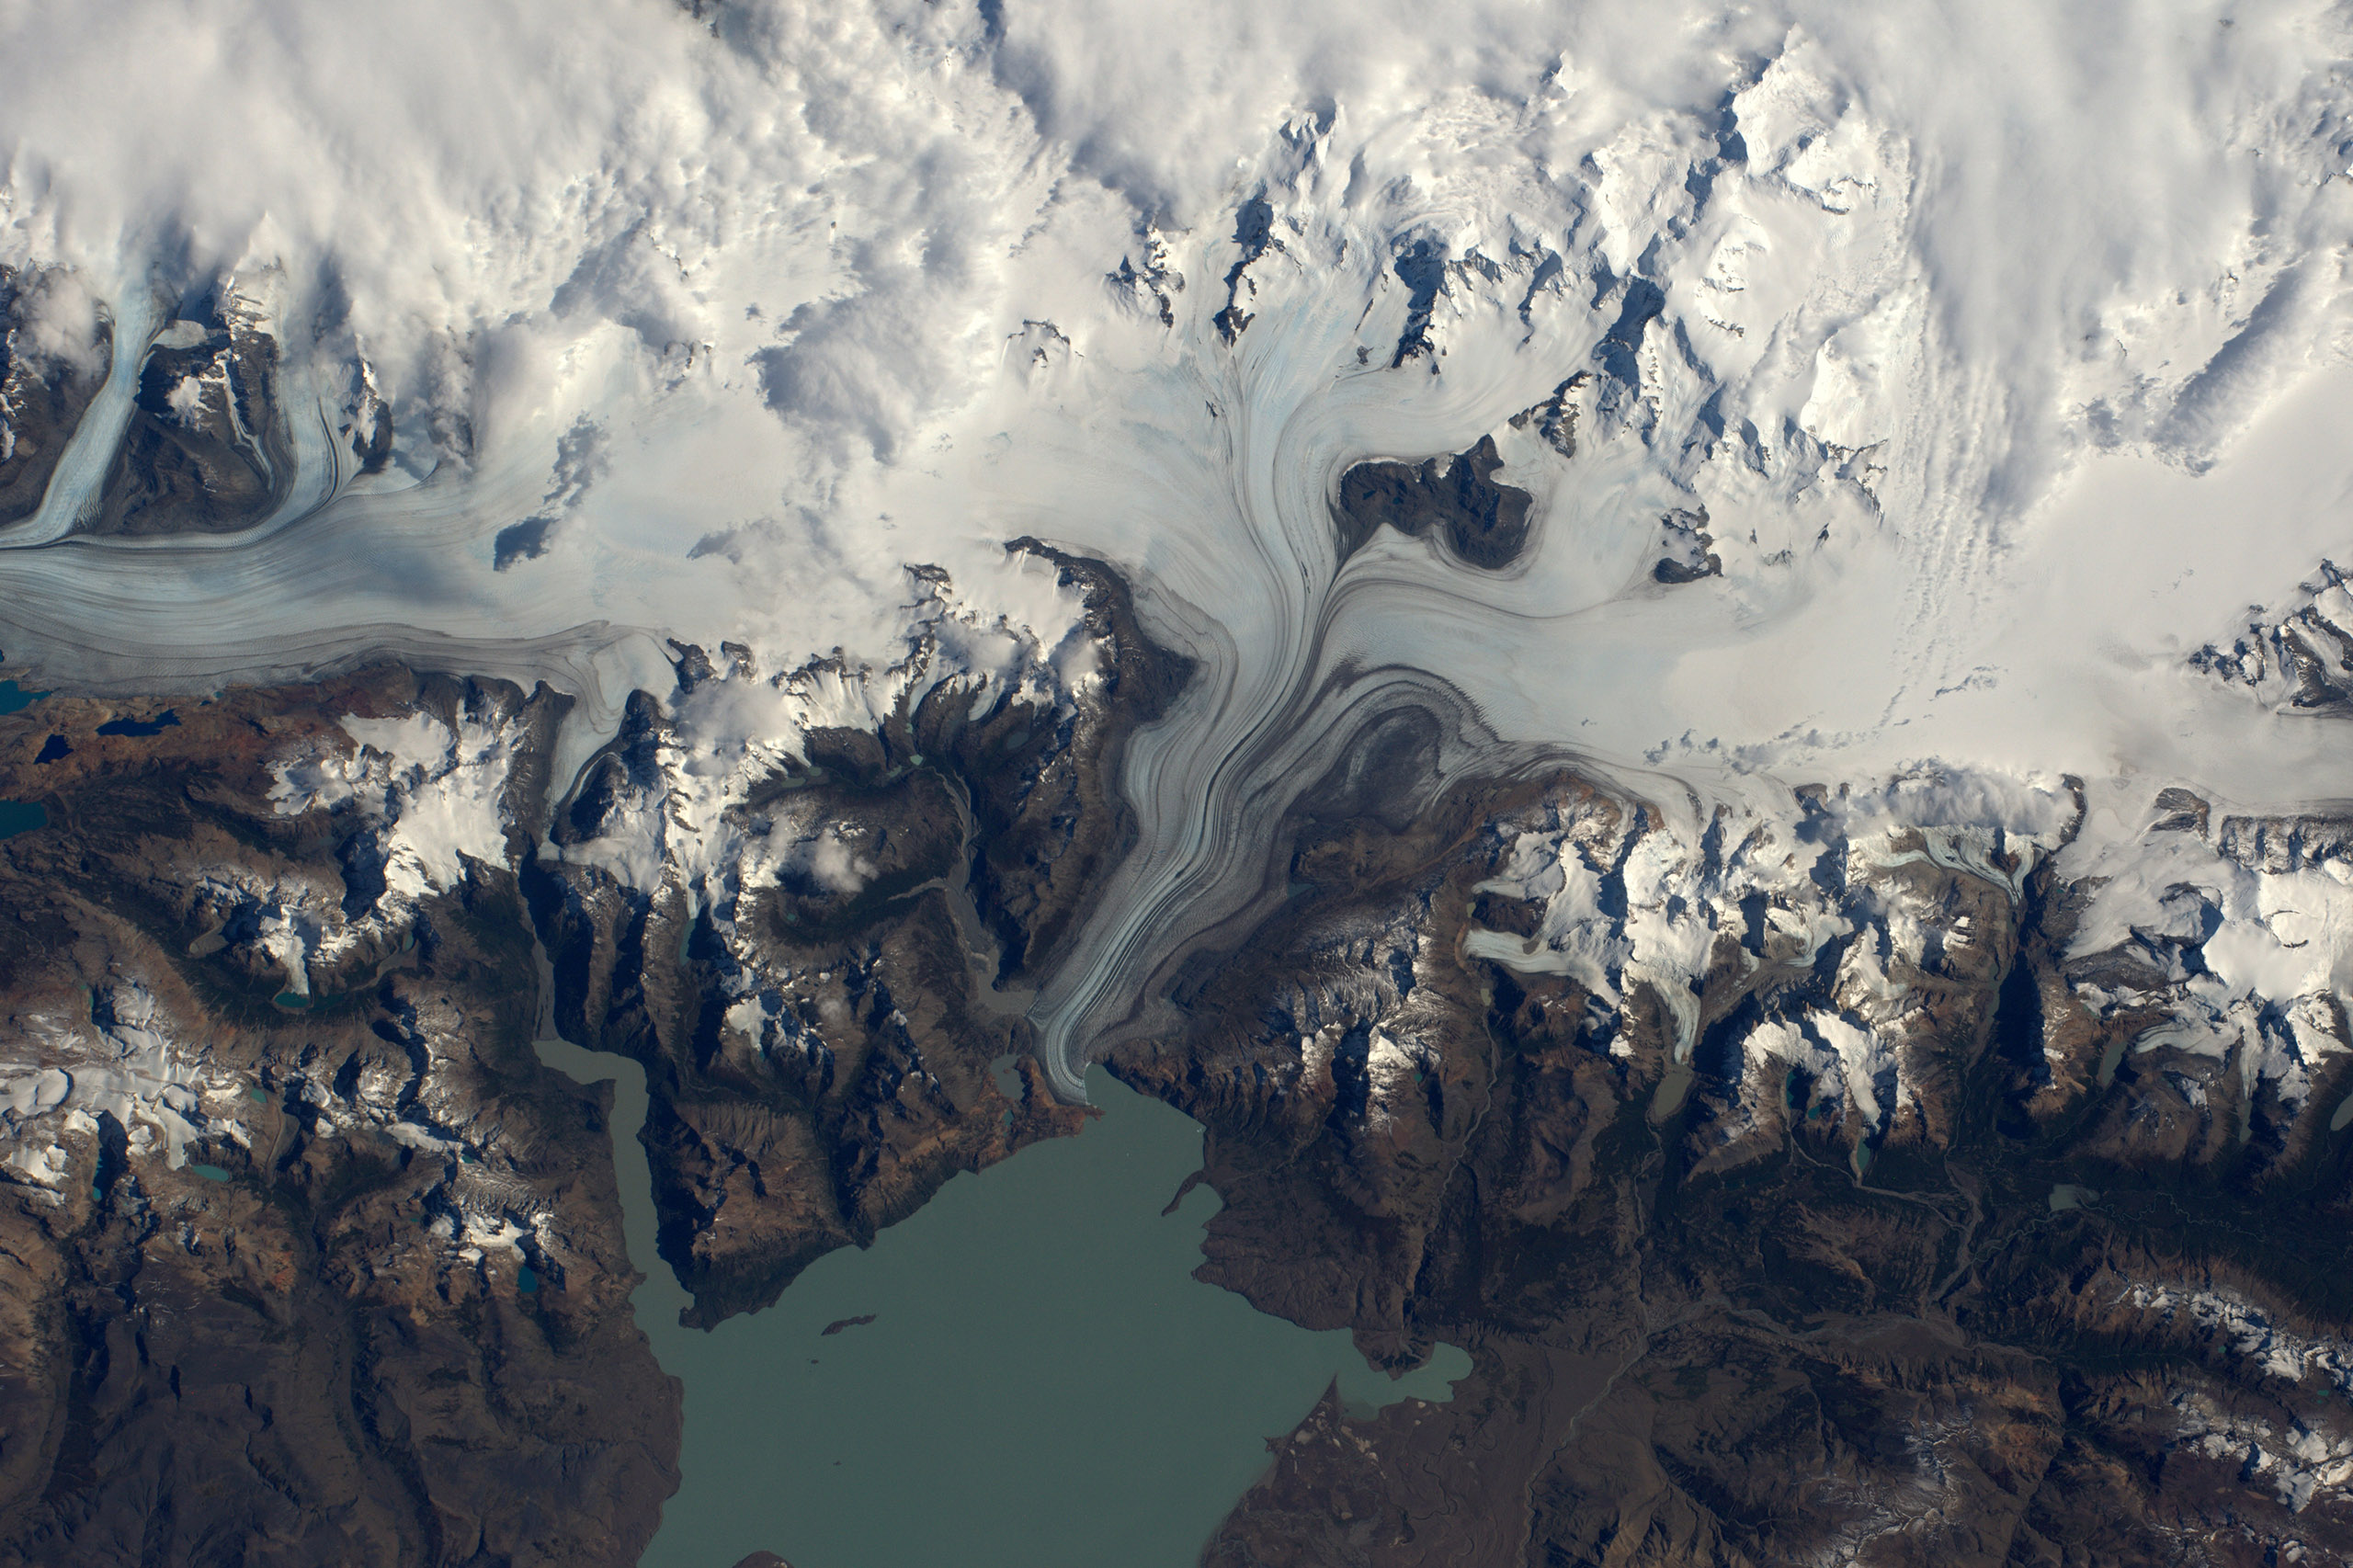 Lake Viedma in the southern ice fields of Patagonia, Argentina, March 24, 2016.